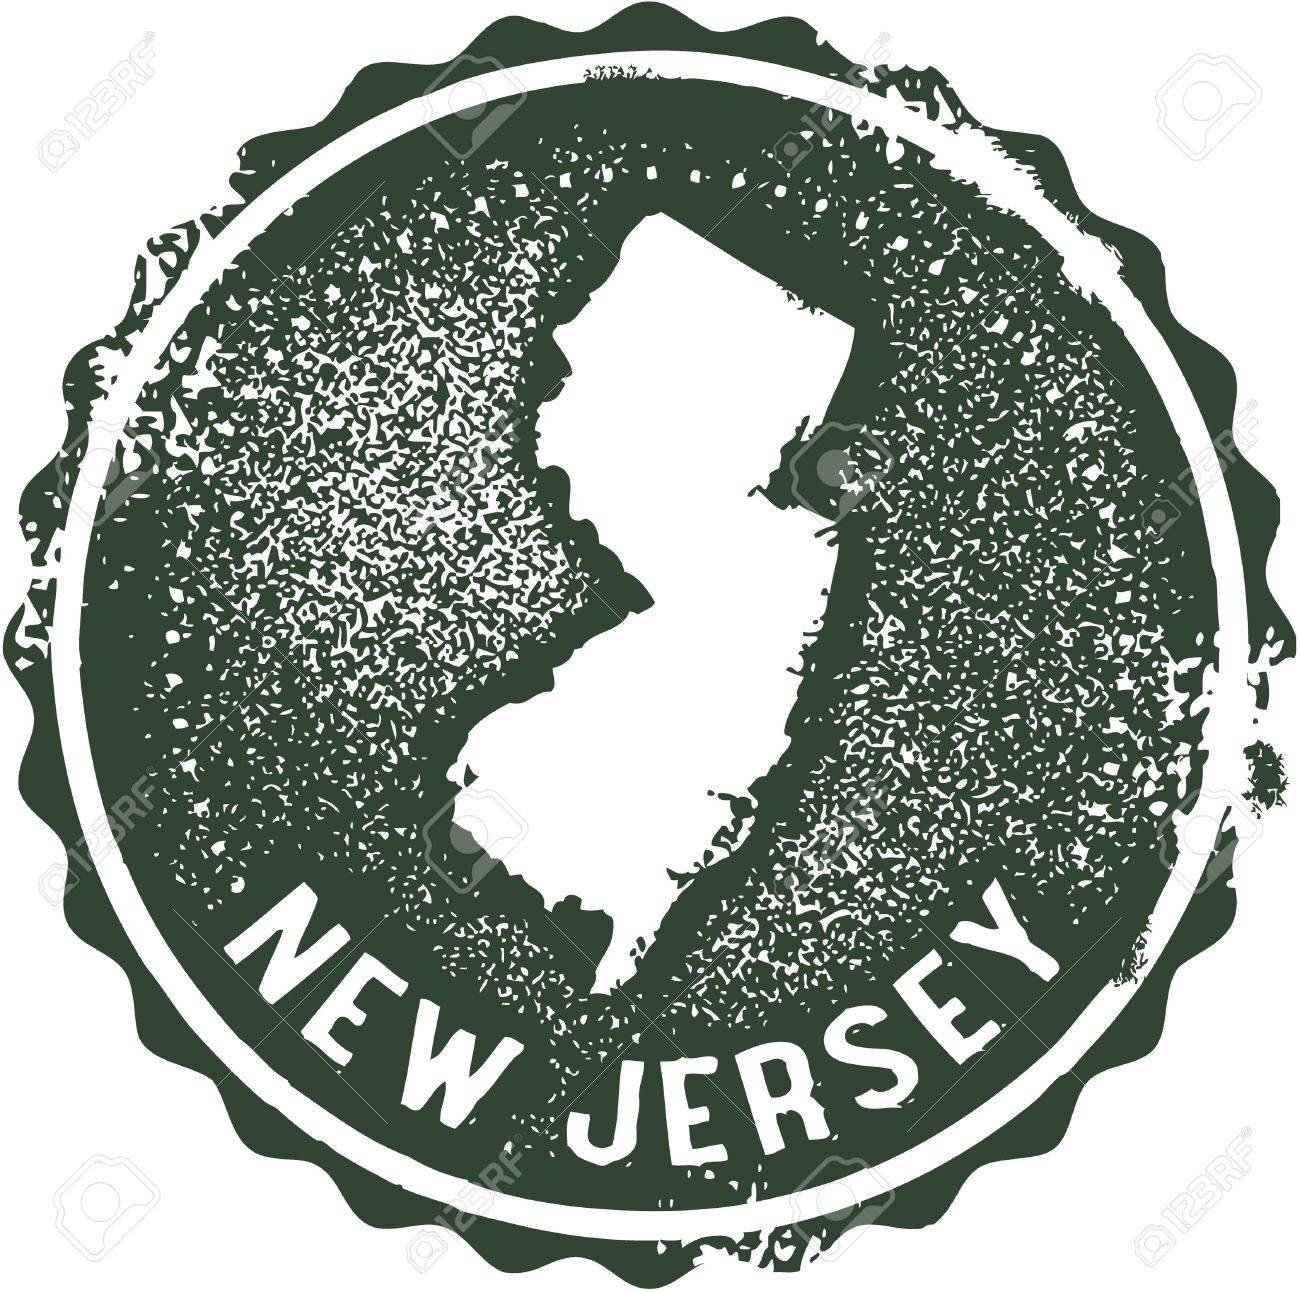 Vintage New Jersey USA State Stamp Royalty Free Cliparts Vectors